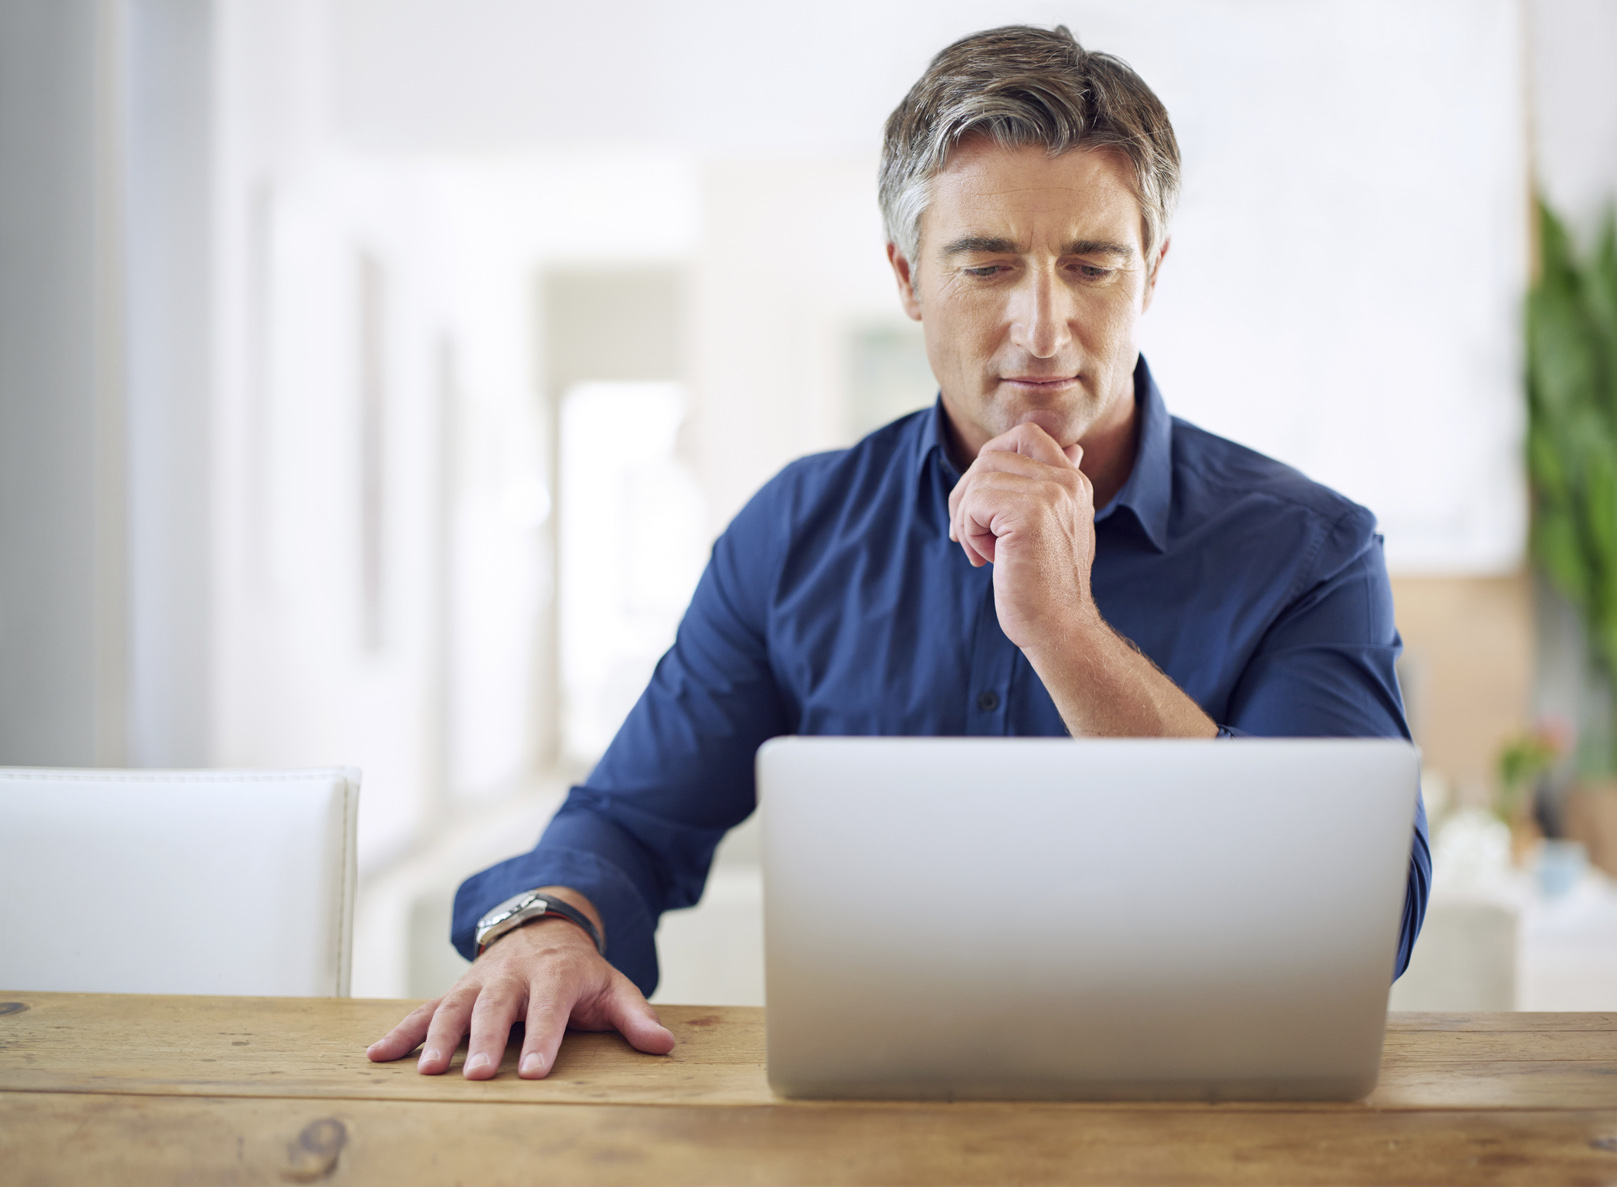 Man looking at a laptop computer screen and thinking